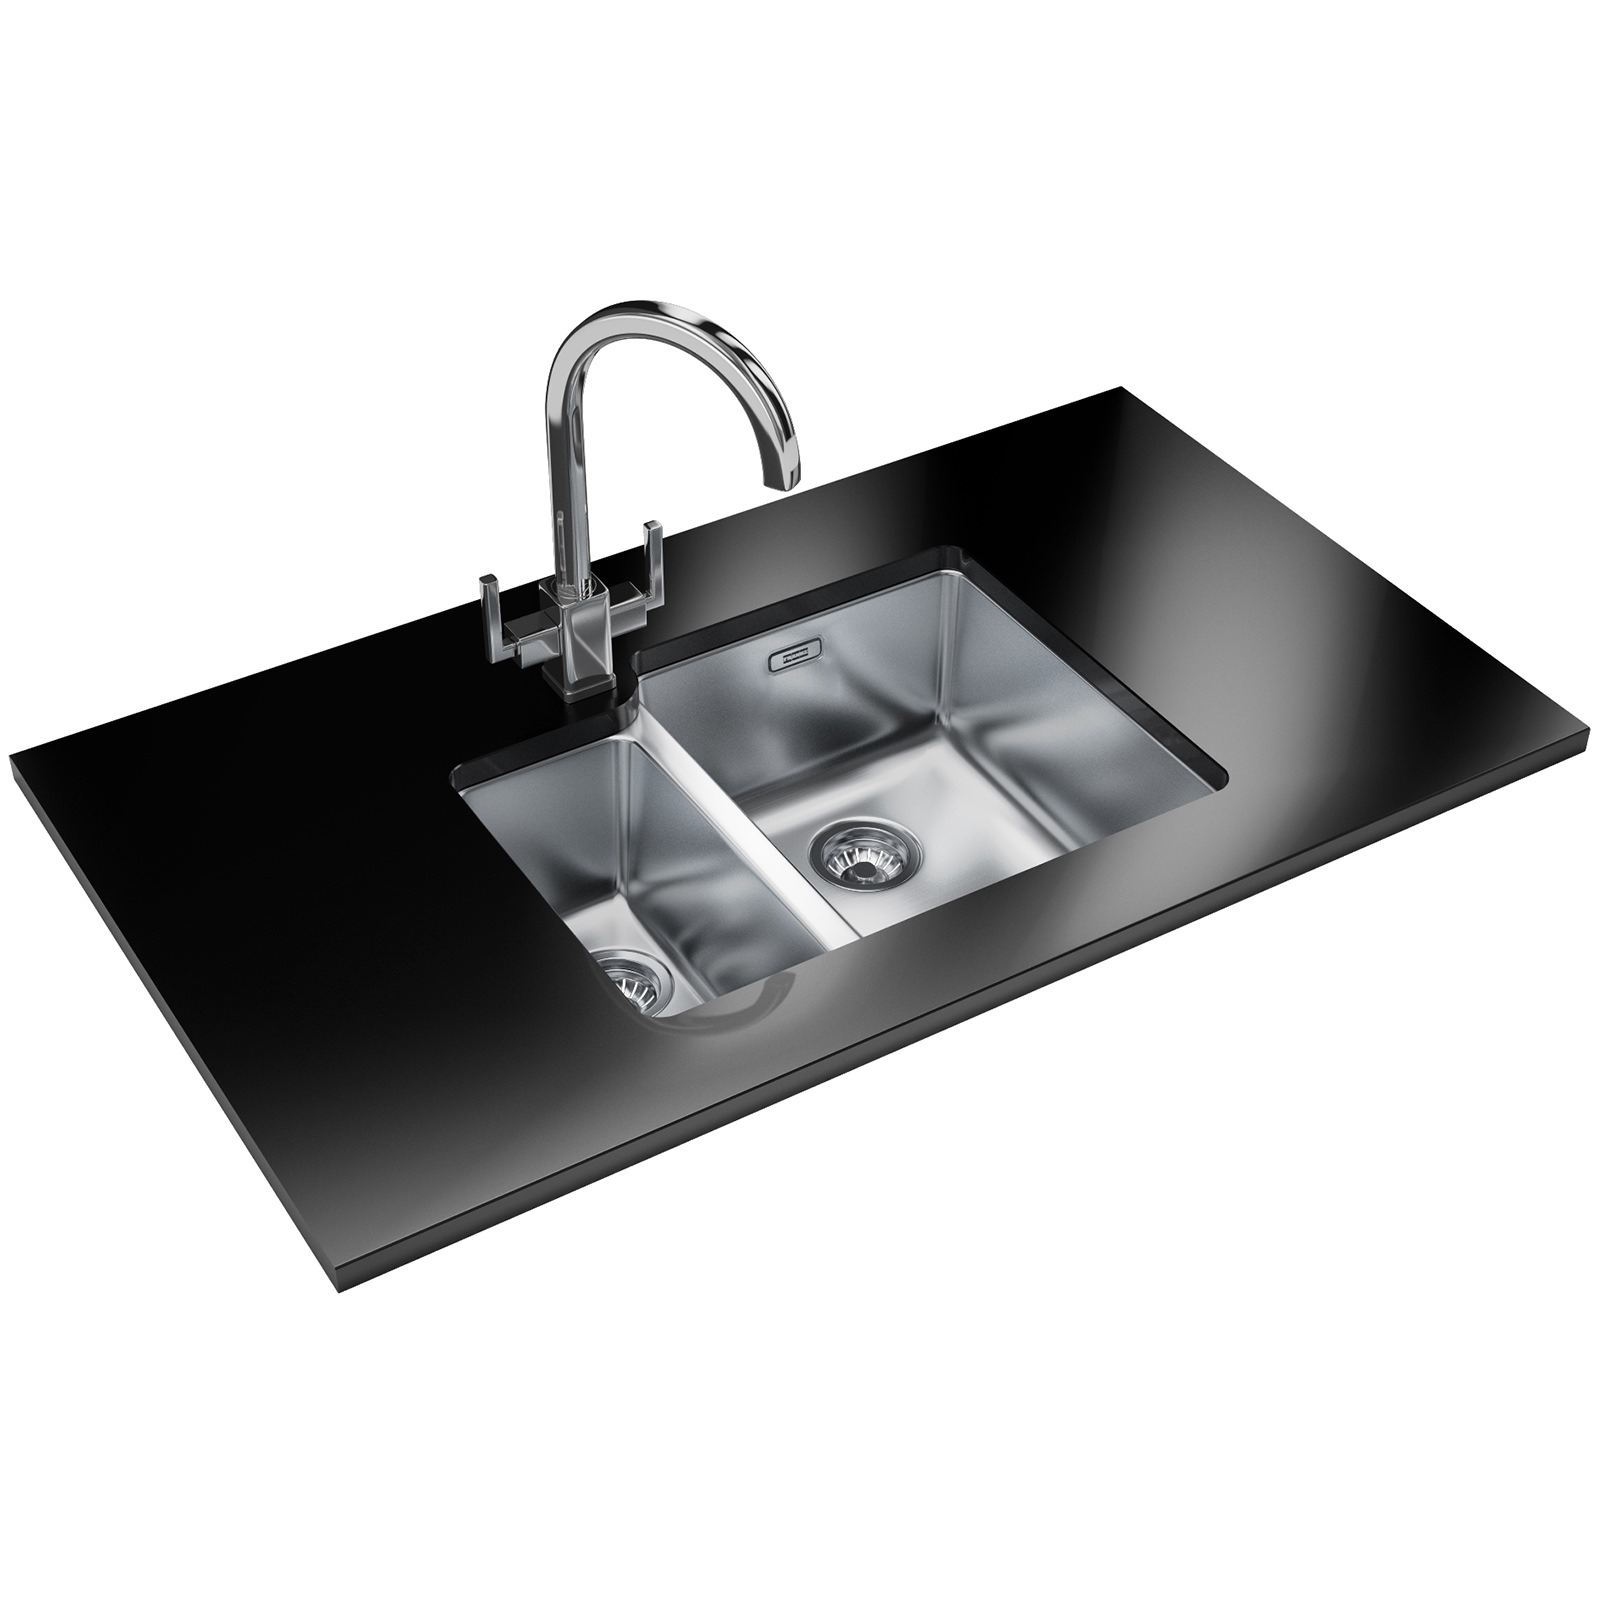 Designer Stainless Steel Sinks : ... Kubus KBX 160 34-16 Designer Pack - Stainless Steel Sink And Tap